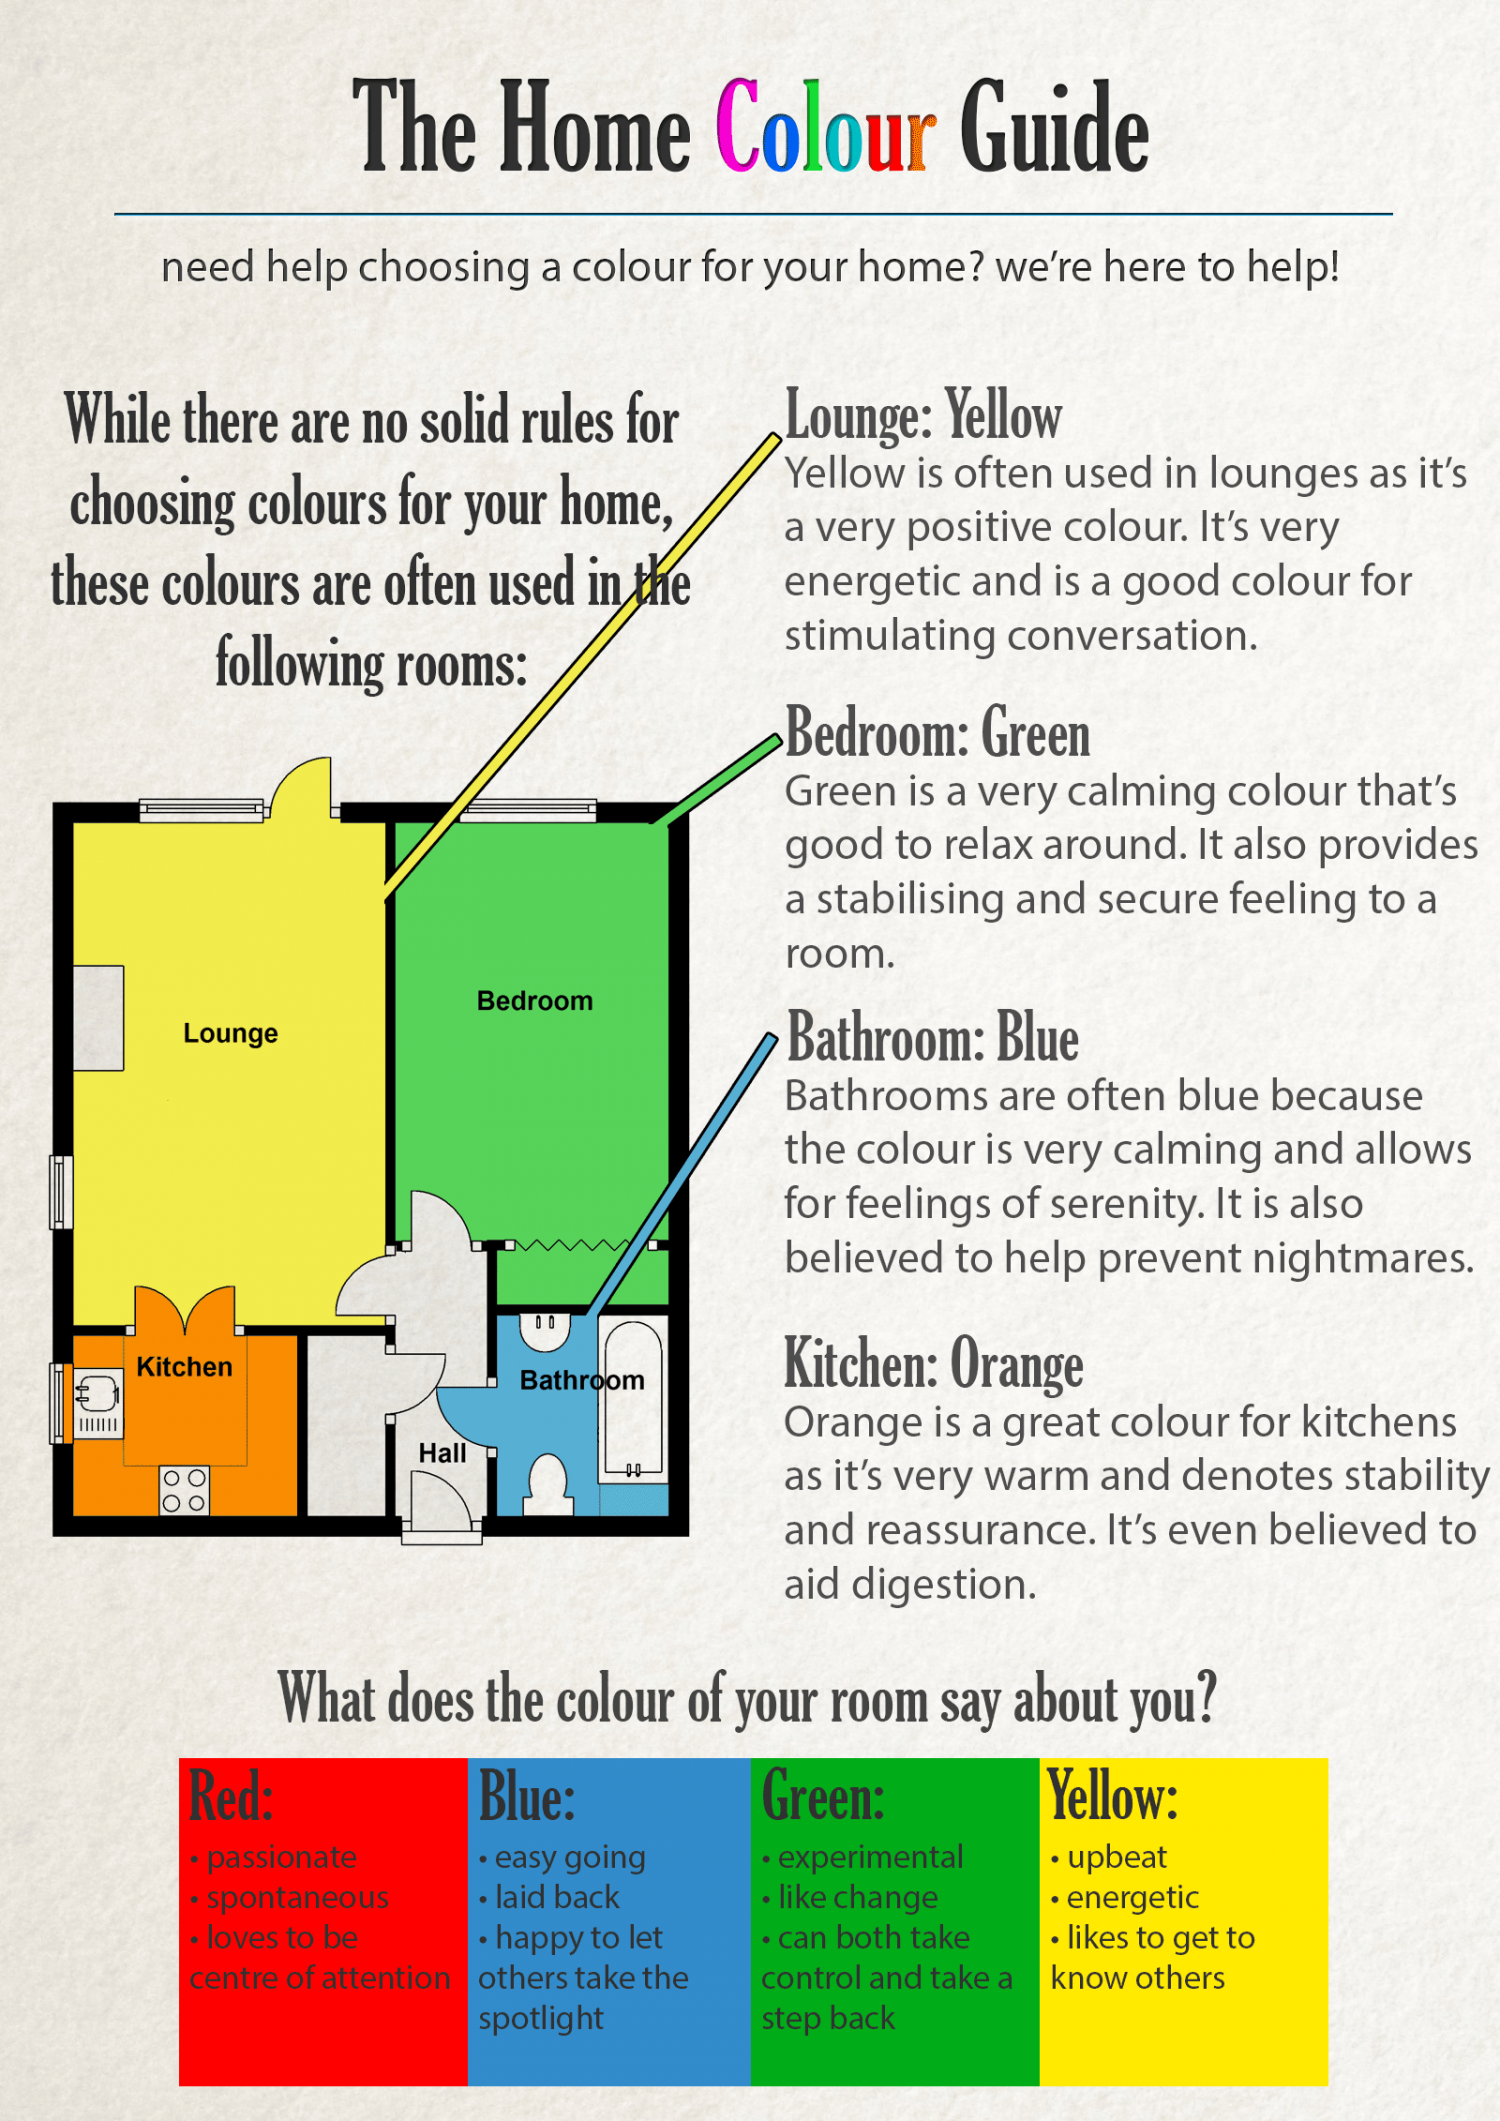 The Home Colour Guide Infographic